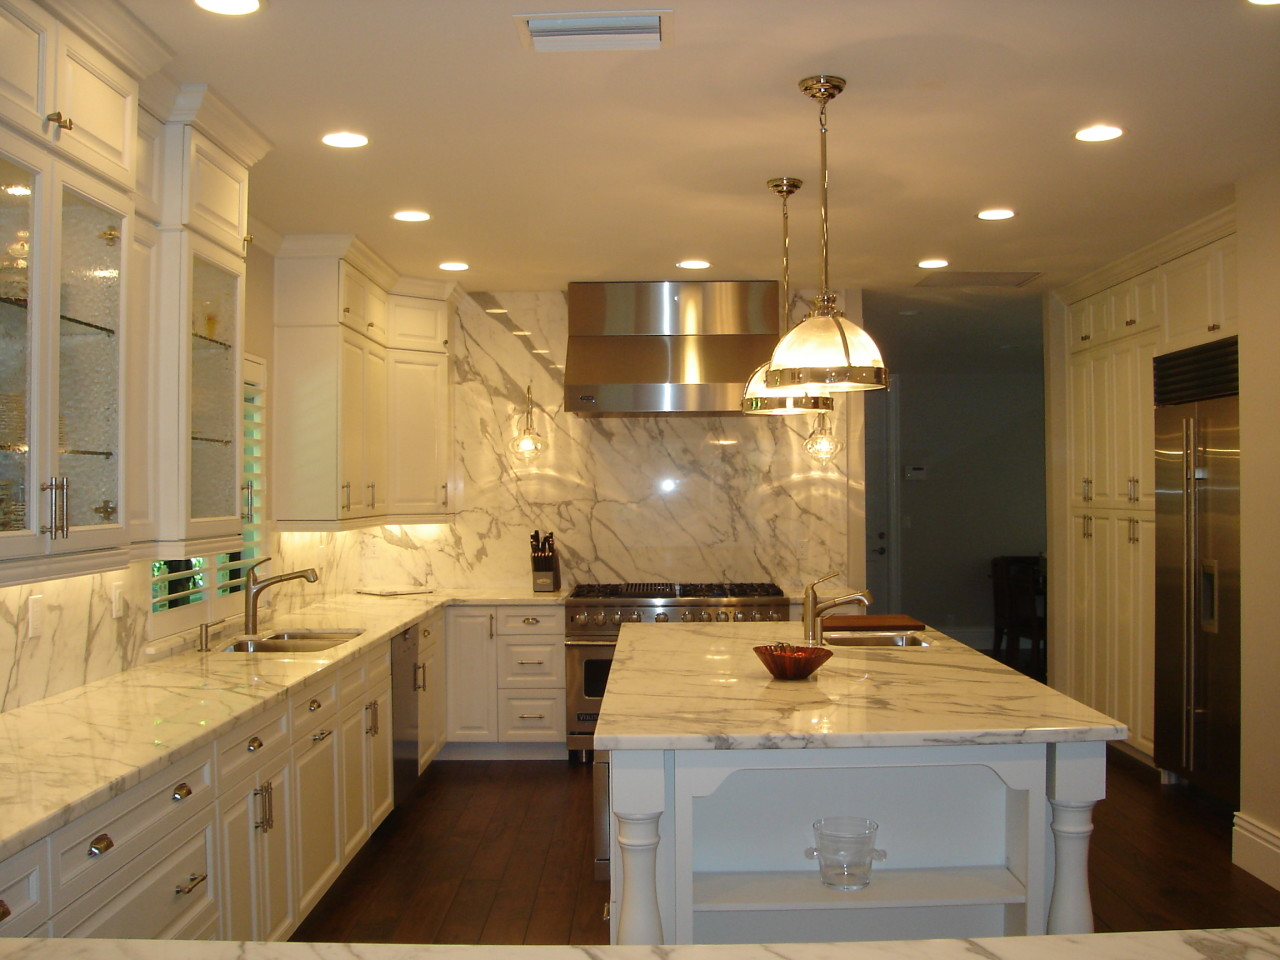 kitchen design south florida transitional kitchen design bath amp kitchen creations 902